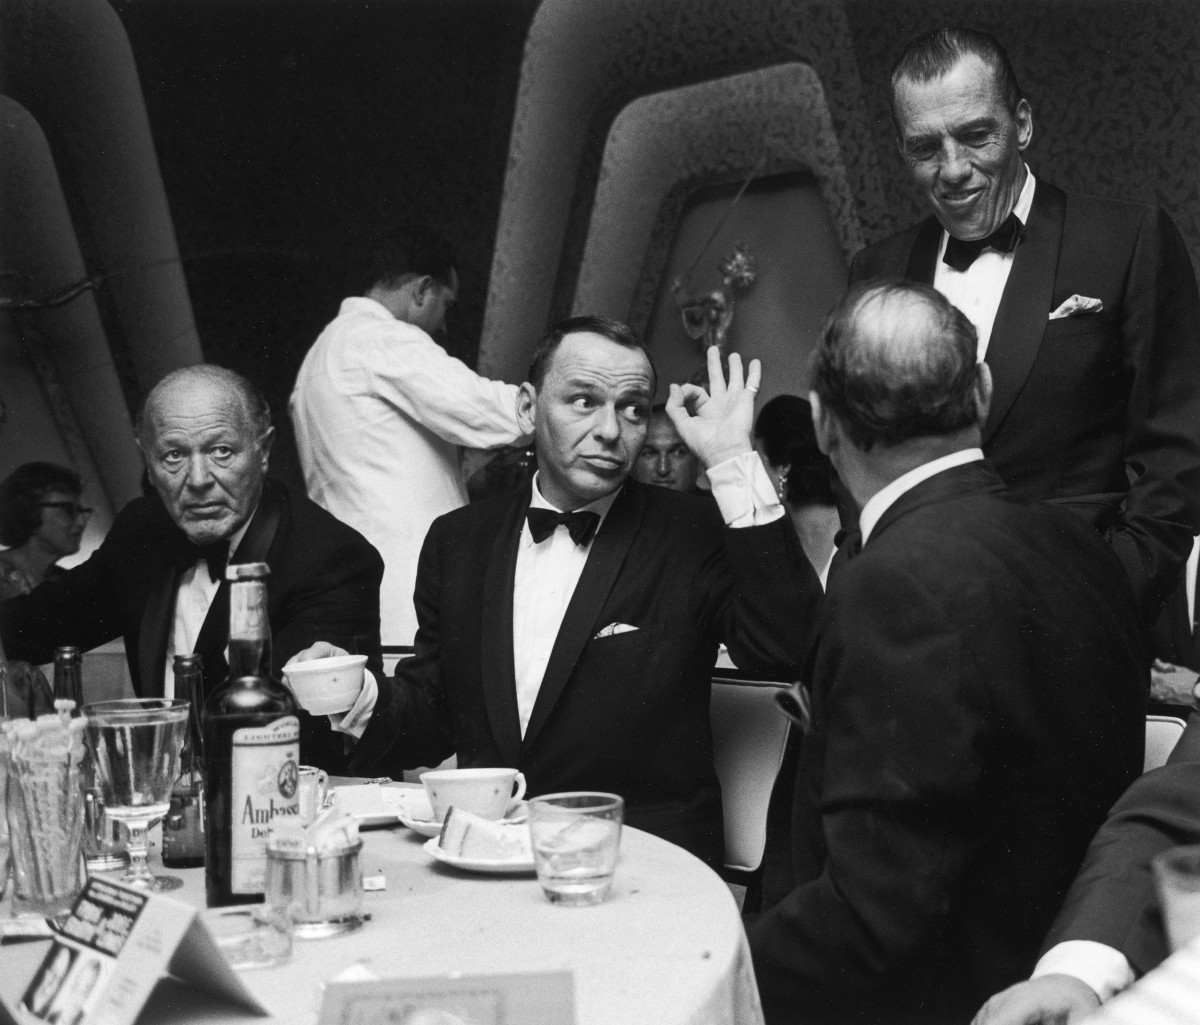 These super cool pictures show Frank Sinatra at his best in 1960s Miami